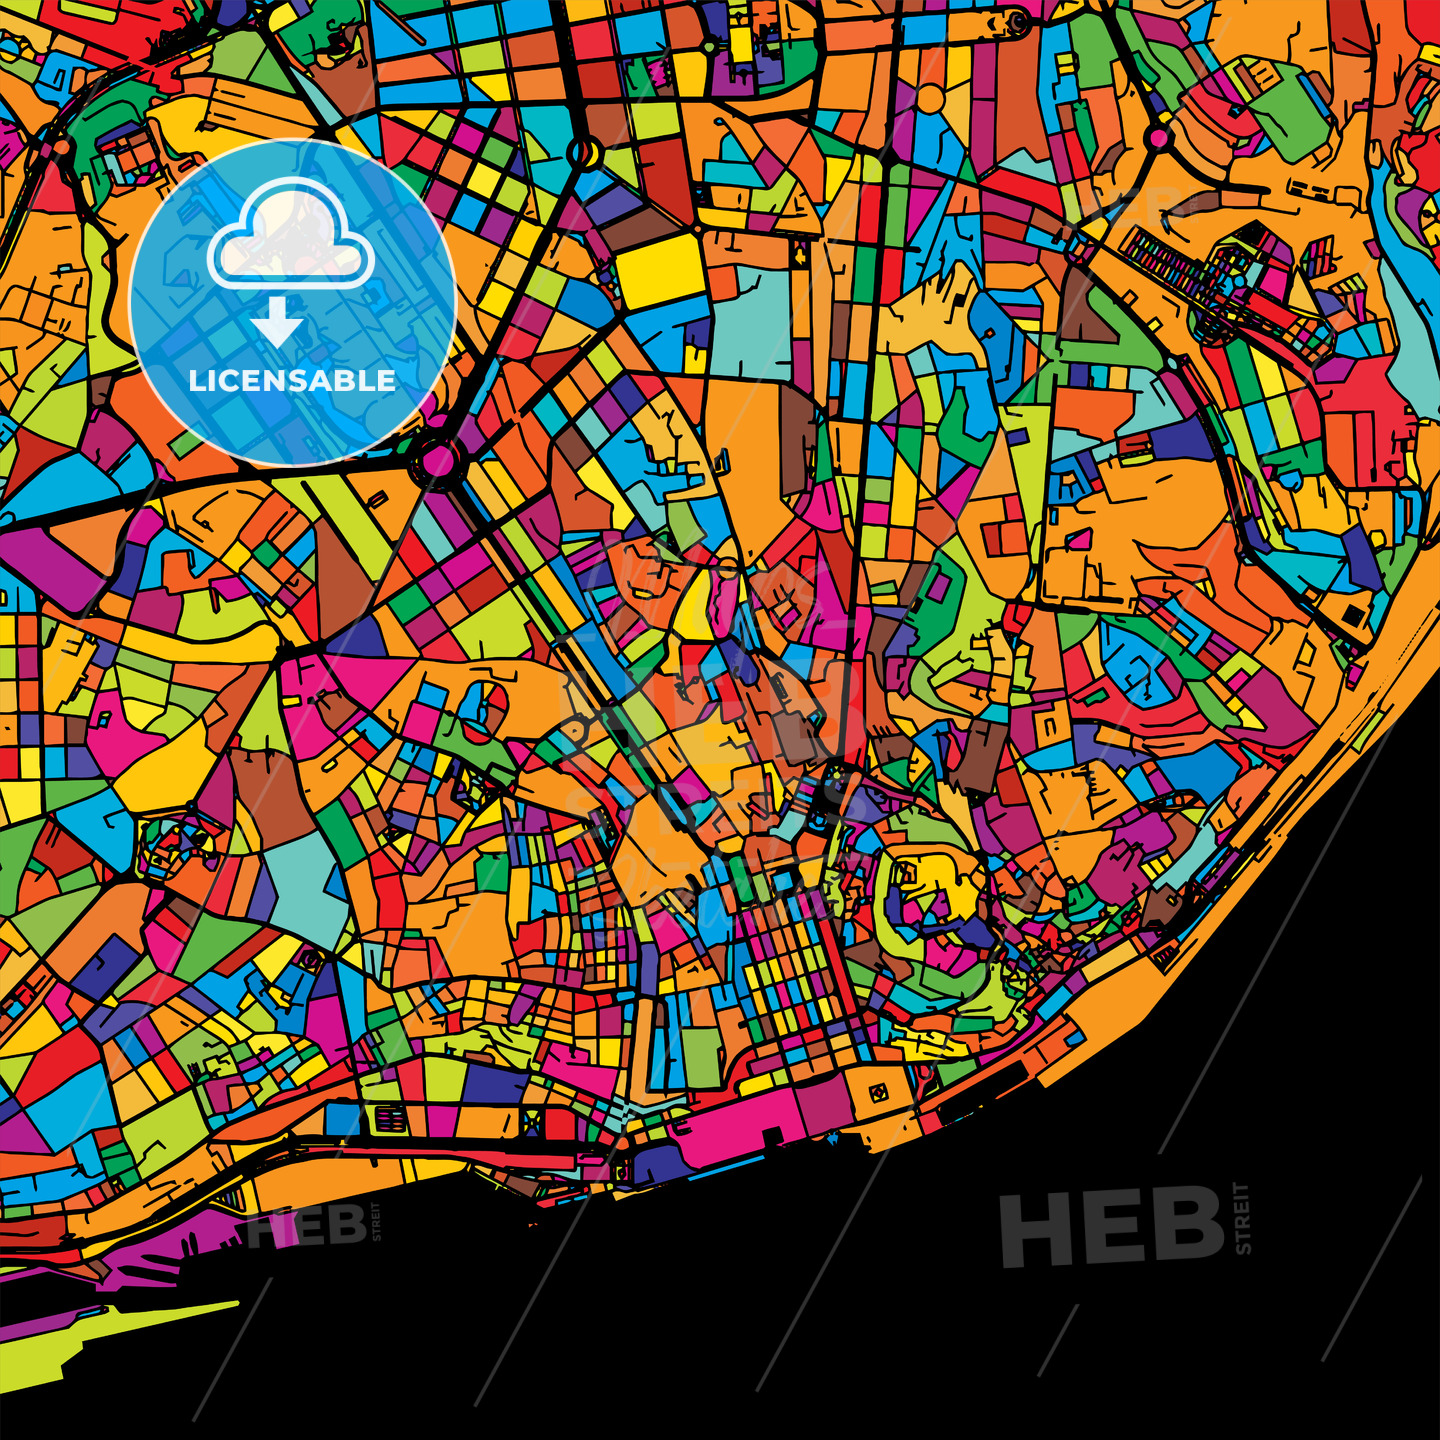 Lisbon Colorful Vector Map on Black - Hebstreits